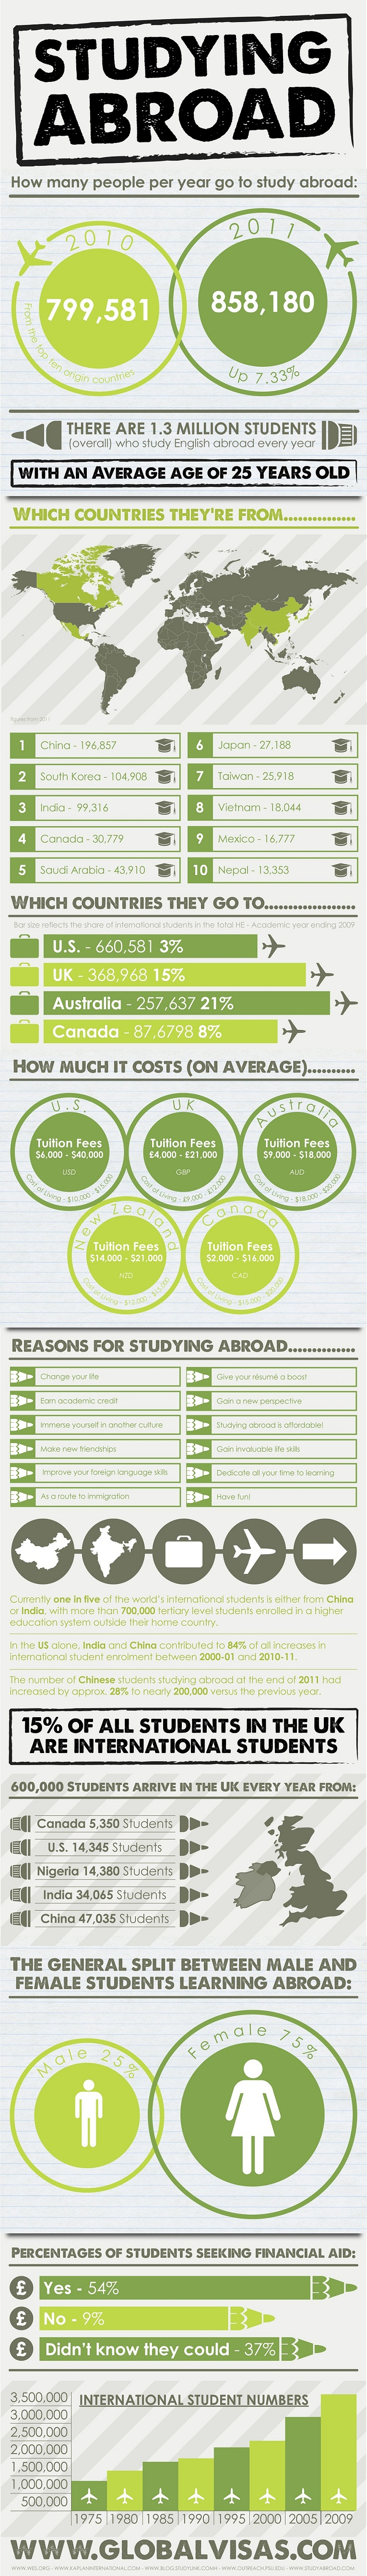 Global-Visas-Studying-Abroad-infographic